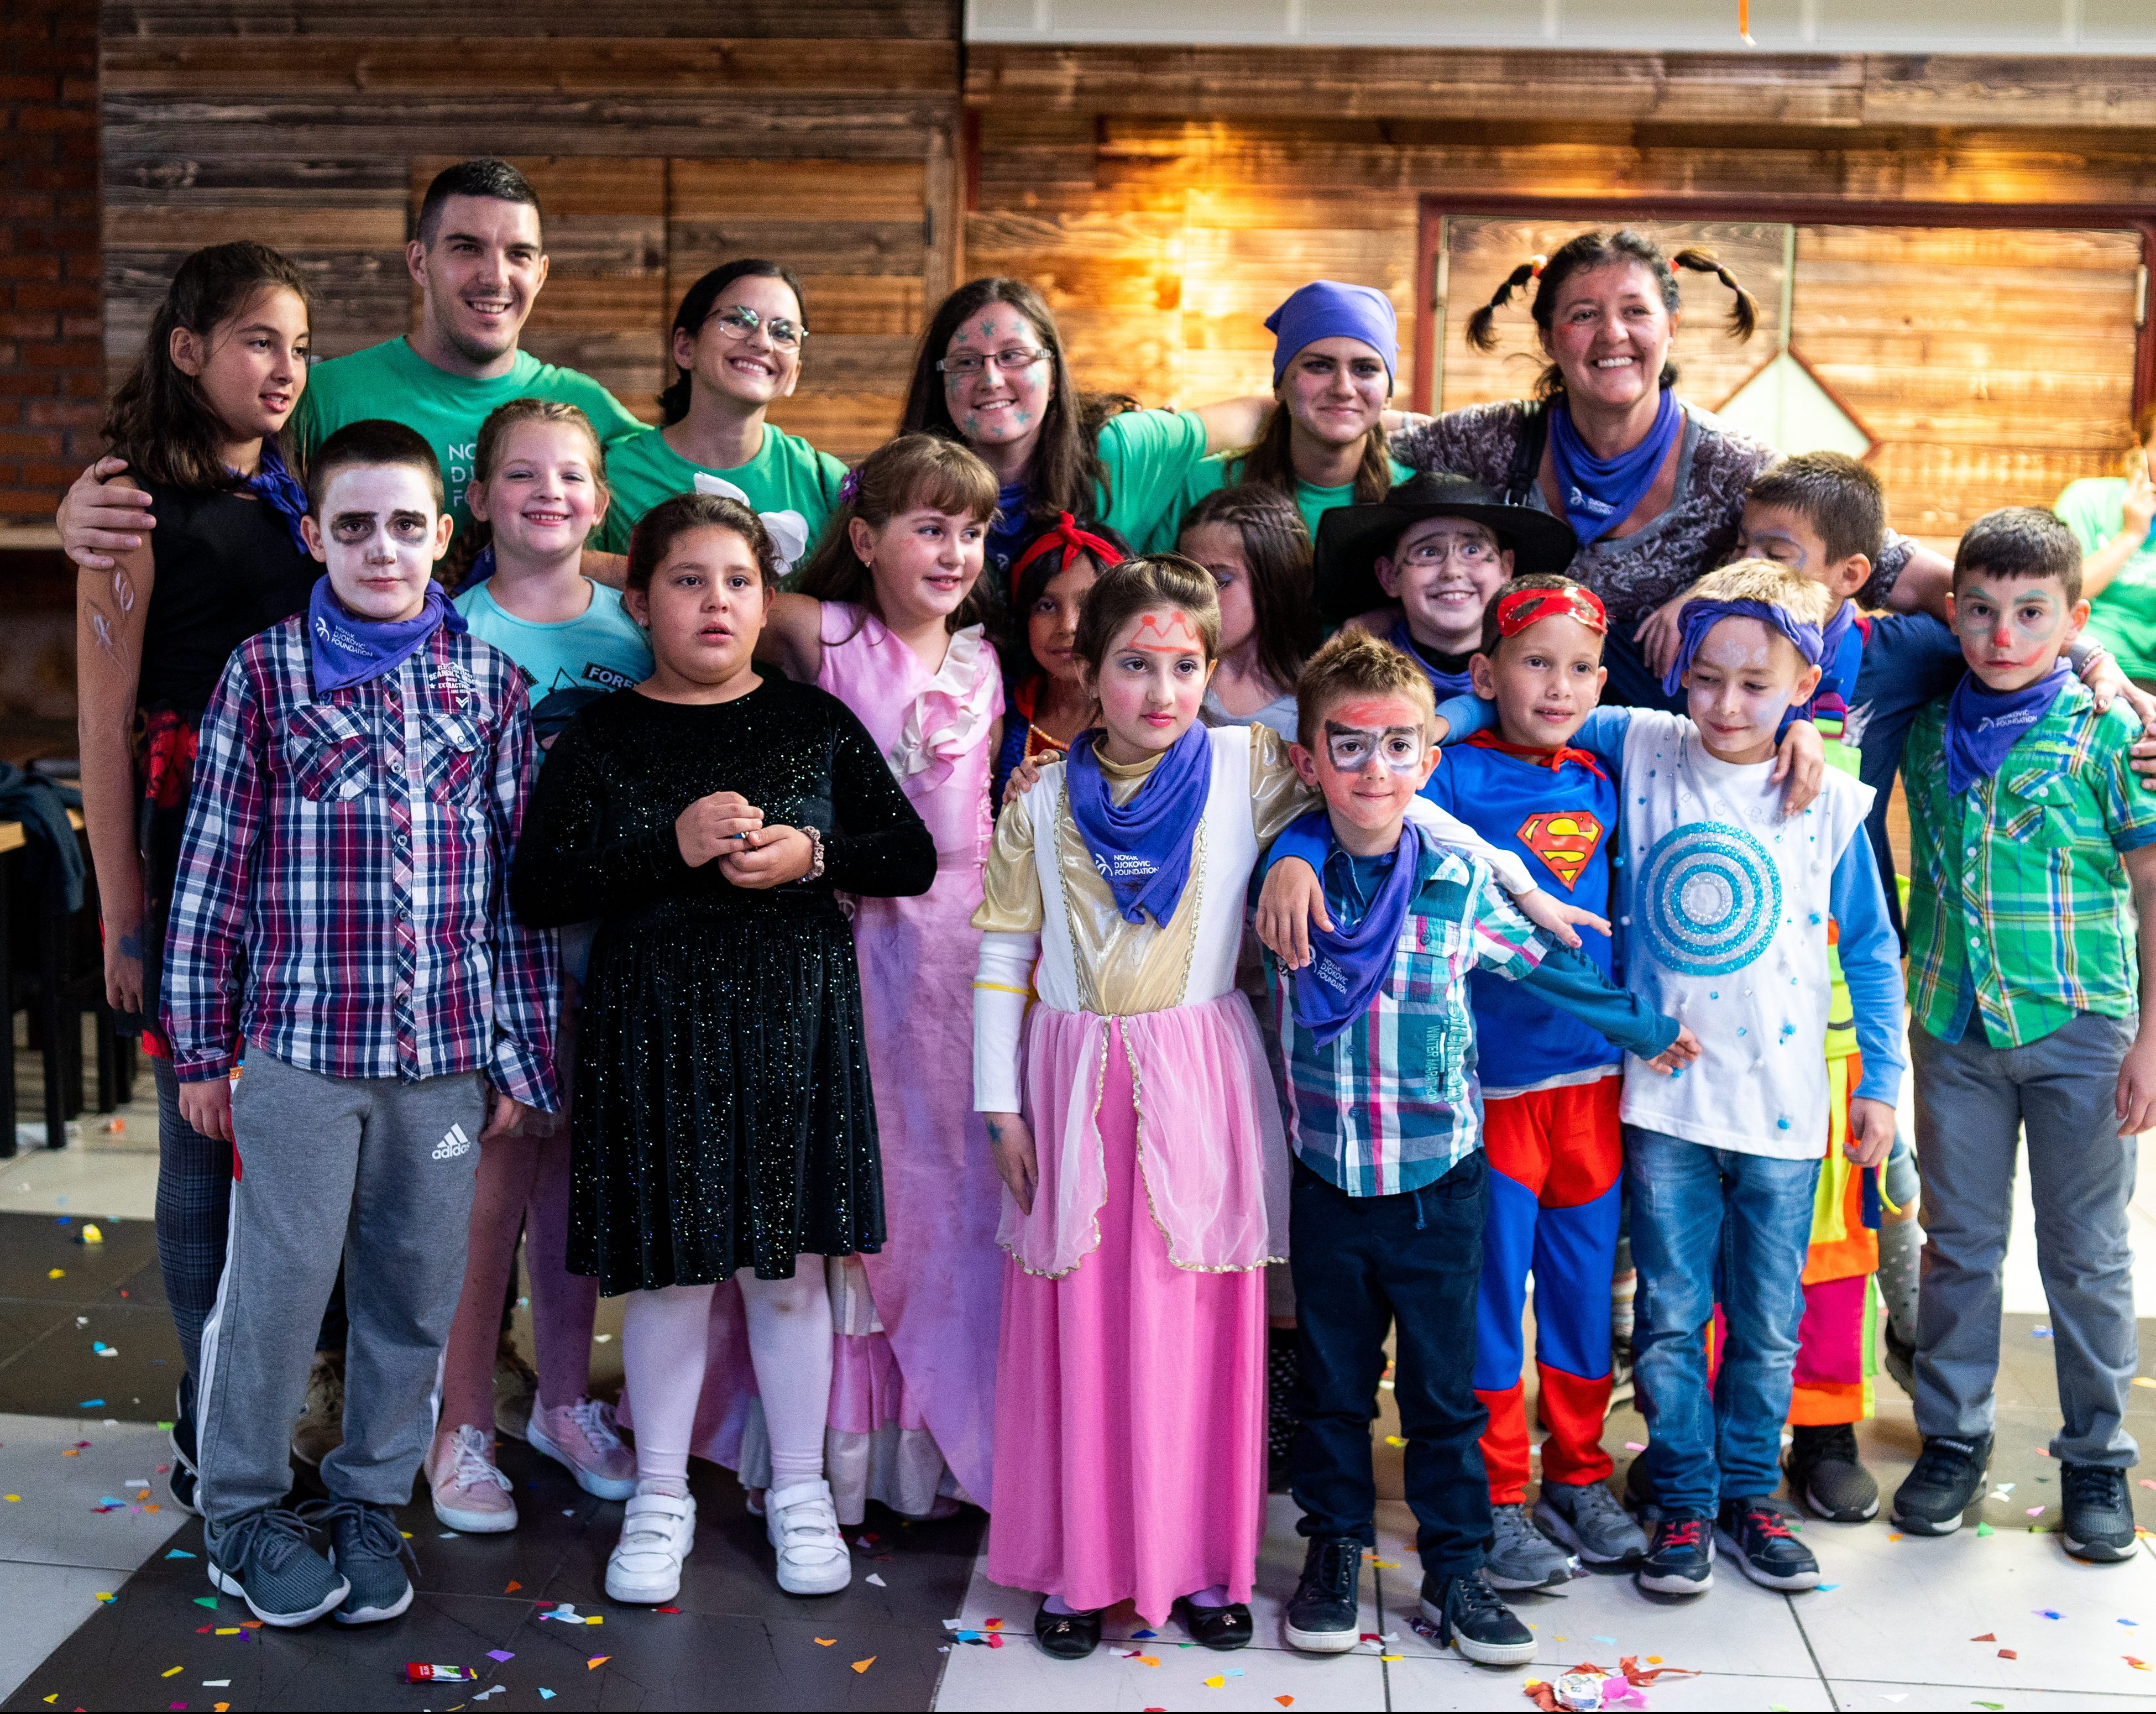 Lena with her group at the most fun activity at the Friendship Games - masquerade ball.